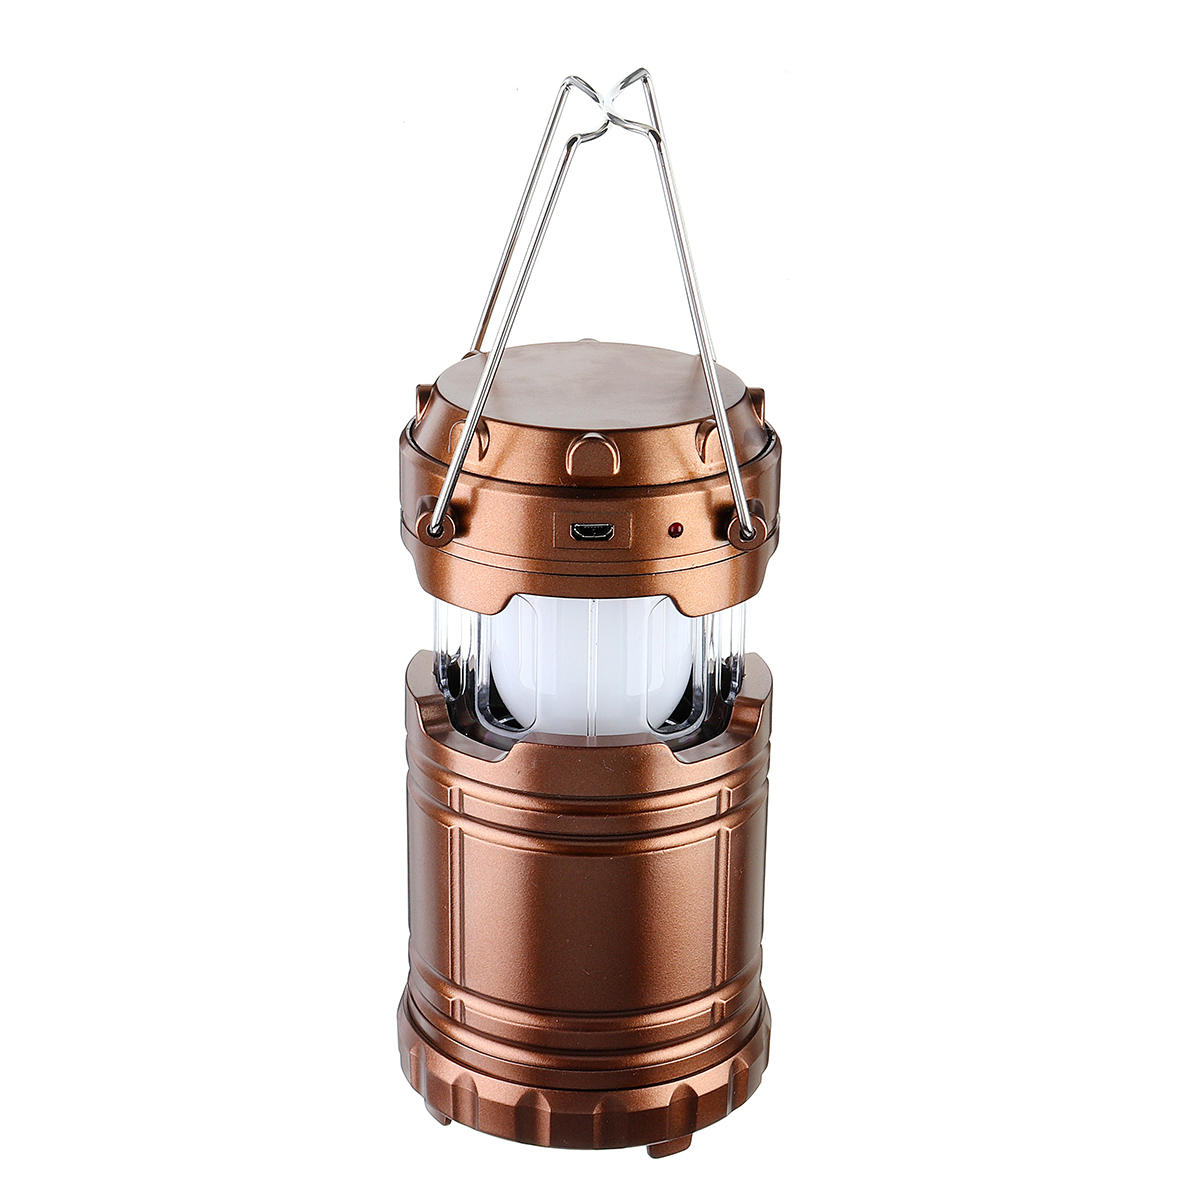 DC 5V Outdoor LED Camping Lantern Tent Ultra Bright Collapsible Mosquito Insect Killer Lamp Light